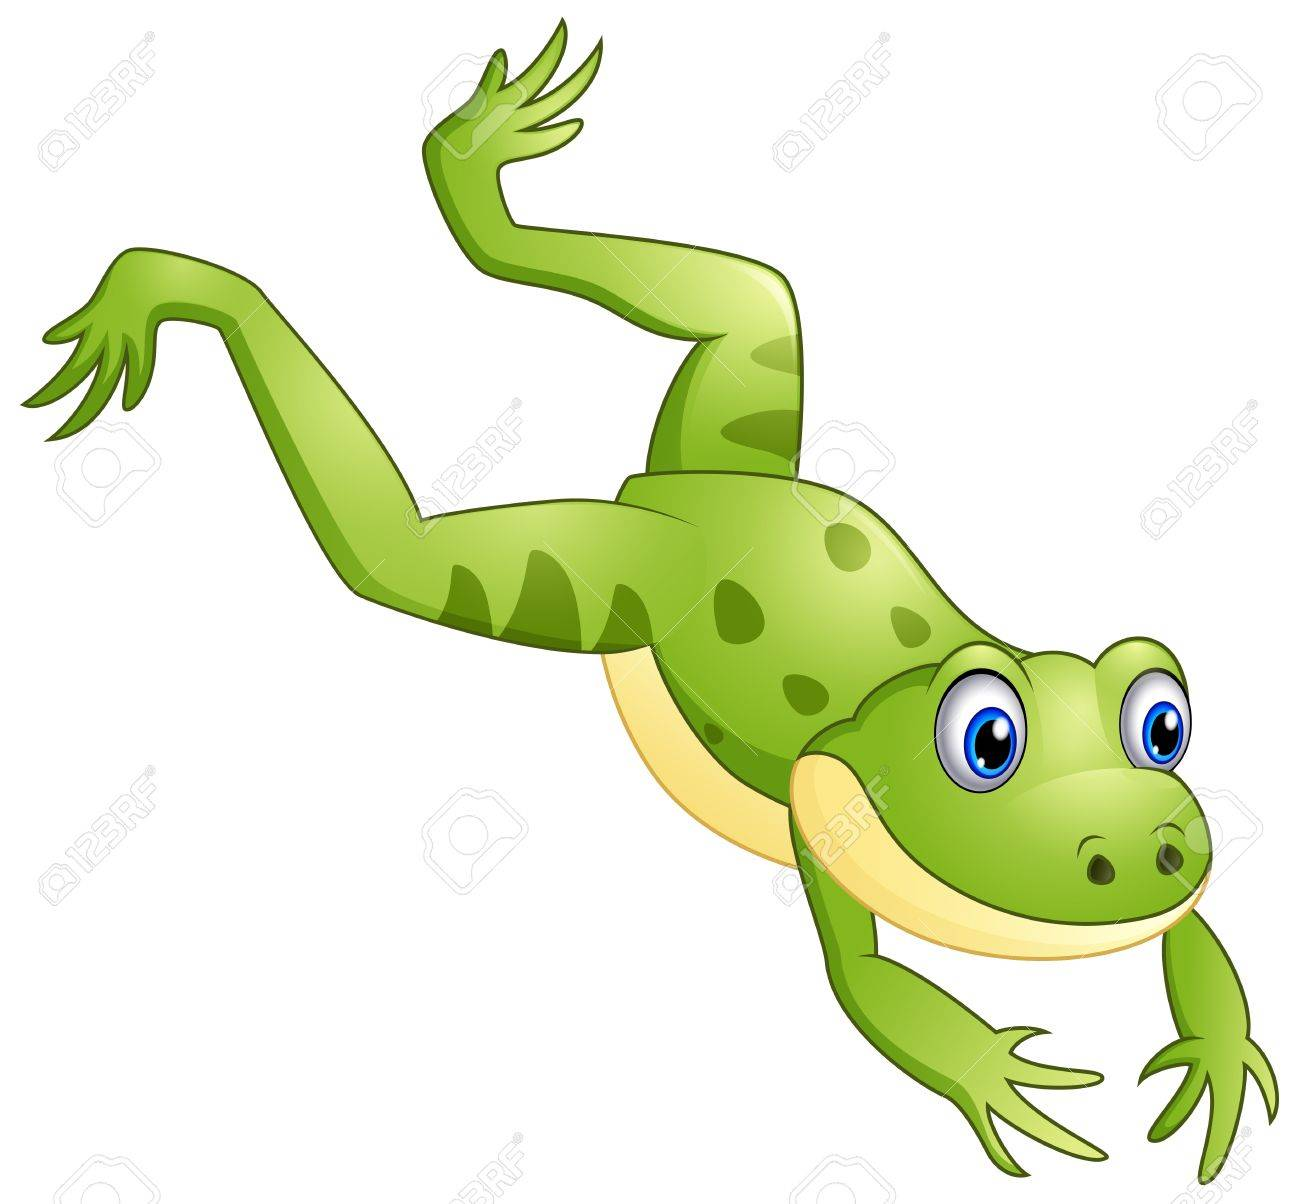 cute frog cartoon leaping royalty free cliparts vectors and stock rh 123rf com Cartoon Frogs Jumping Hoppin' Frog Boris the Crusher